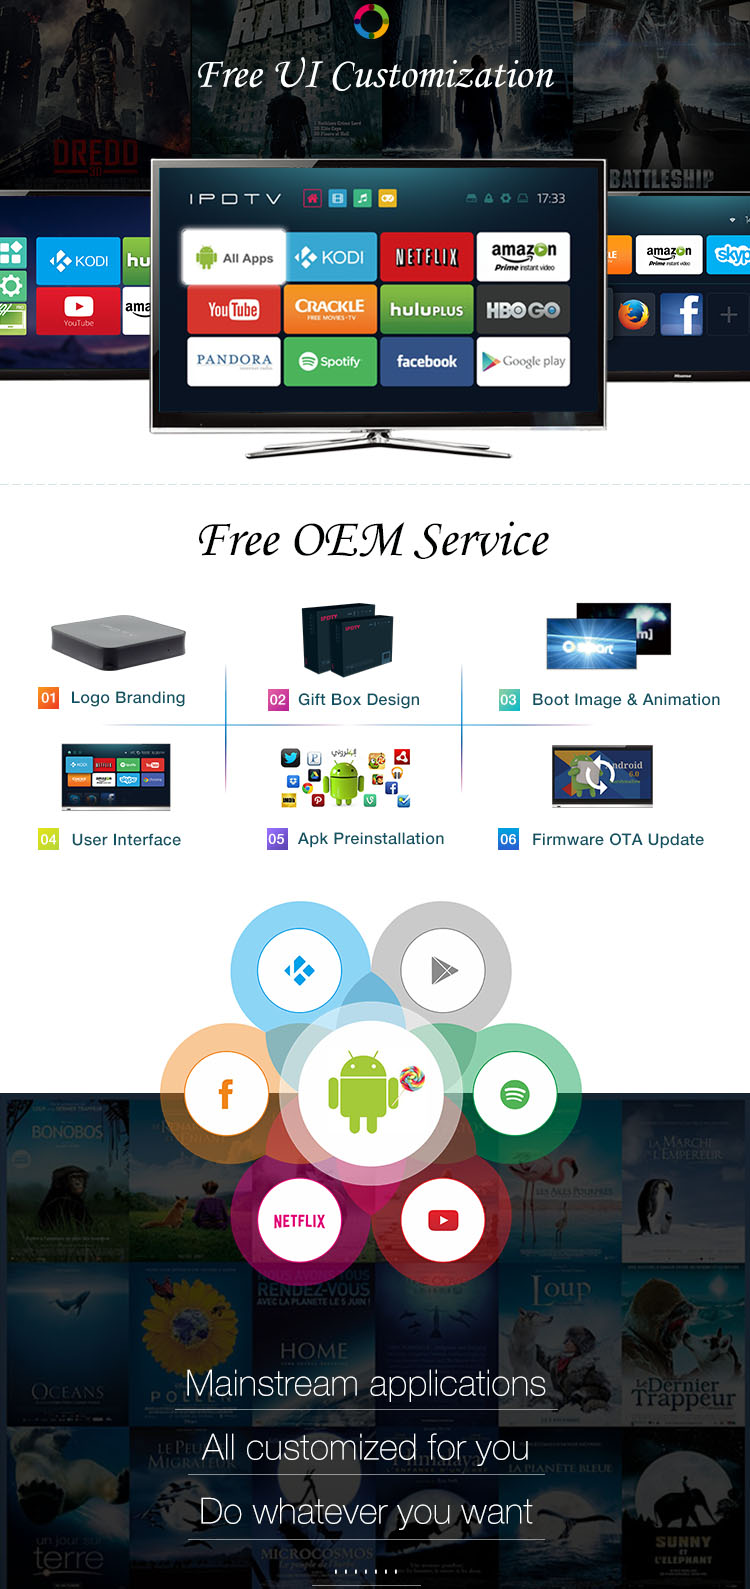 HDA800M1A OEM MediaTek MT8685 1GB+8G Quad-core 1080P H.265 Smart Android Set Top Box OTT TV Box with Kodi